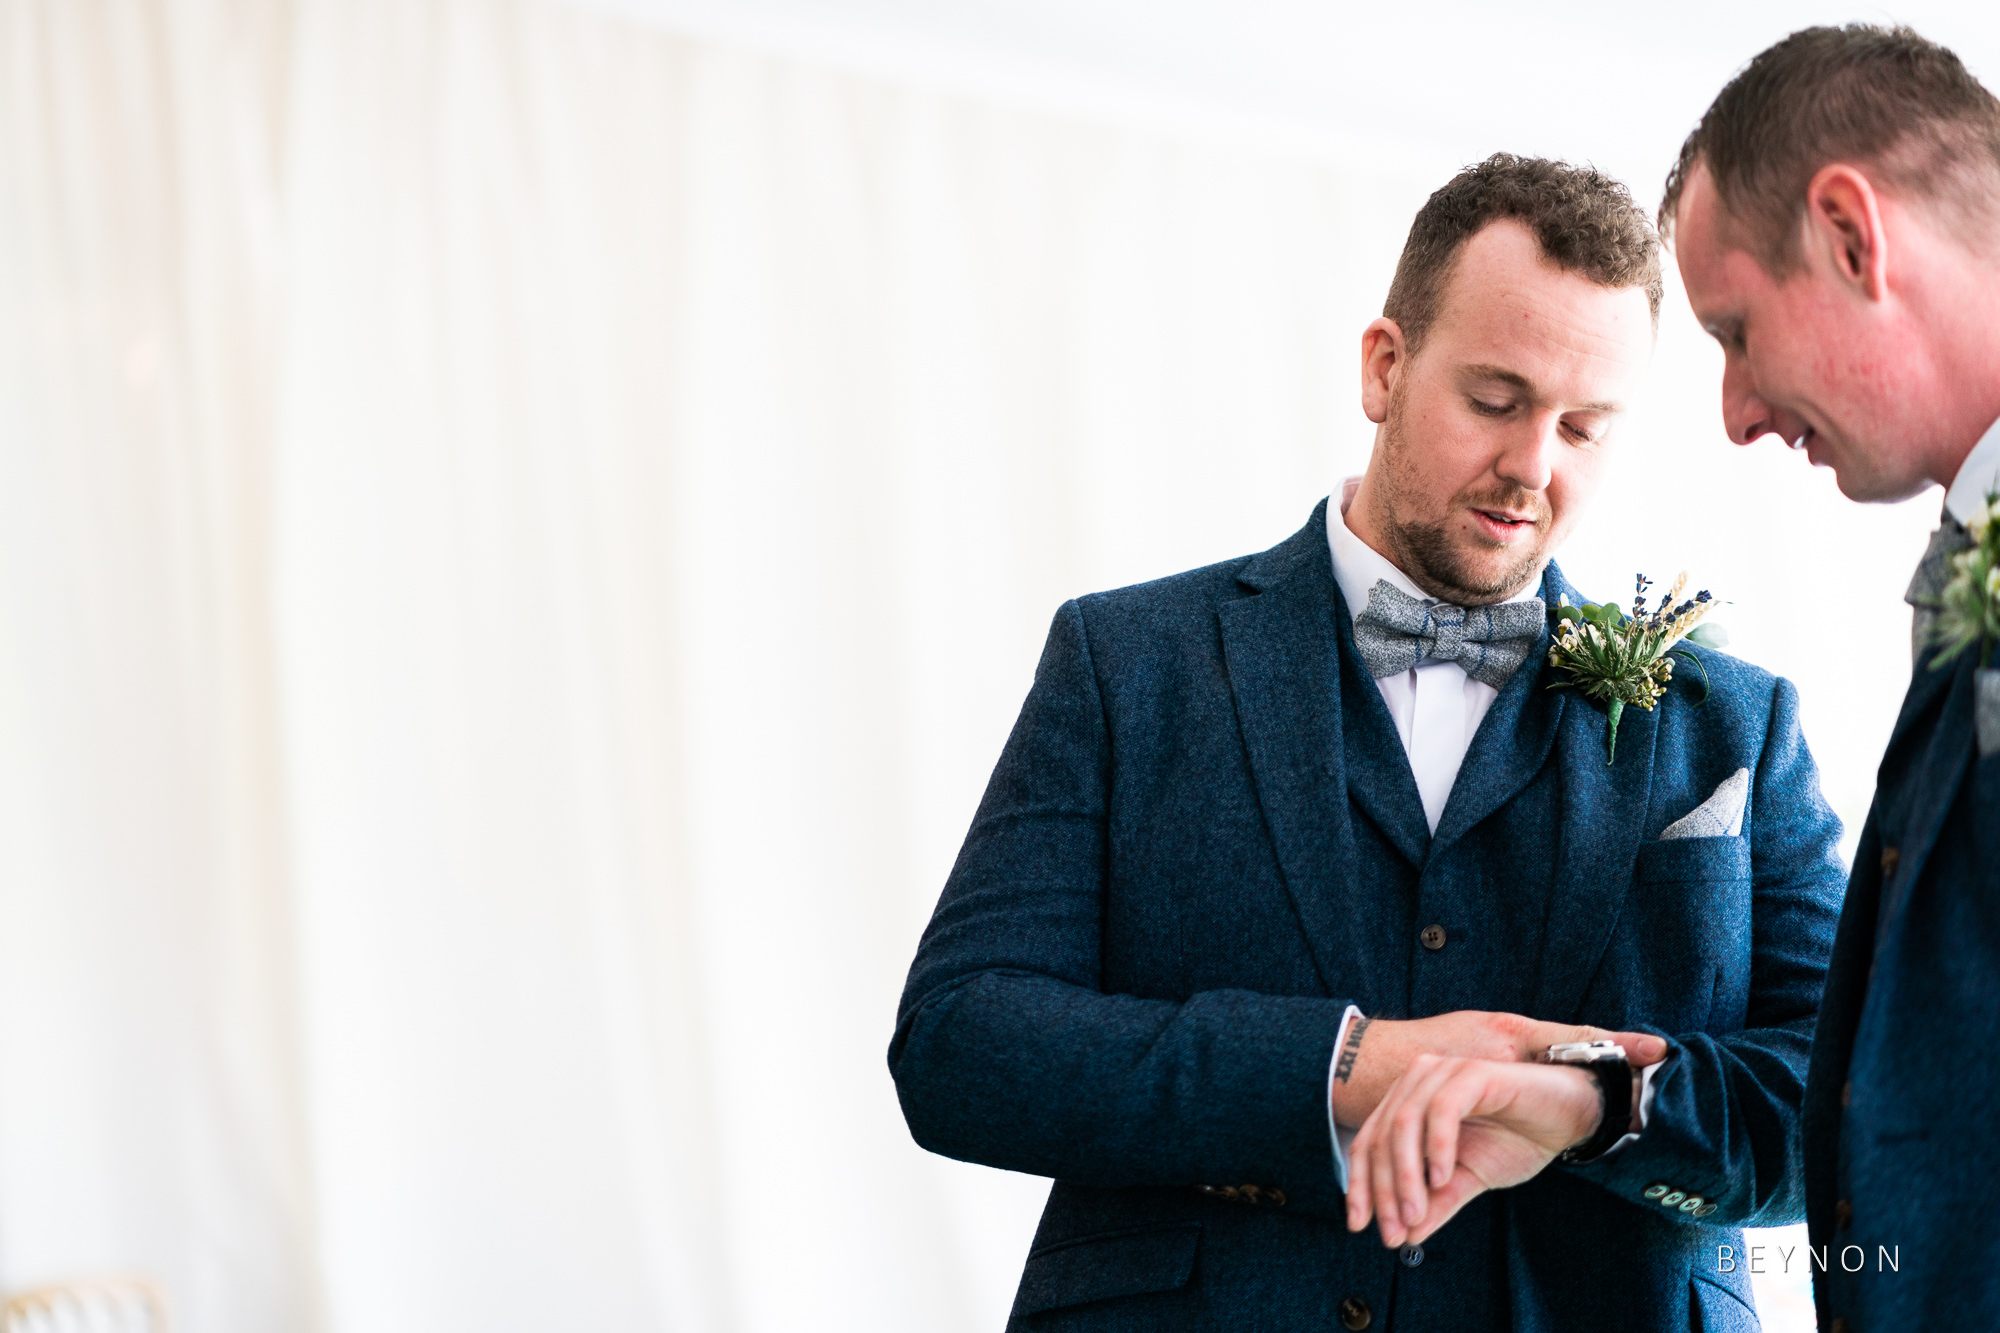 Groom checks watch